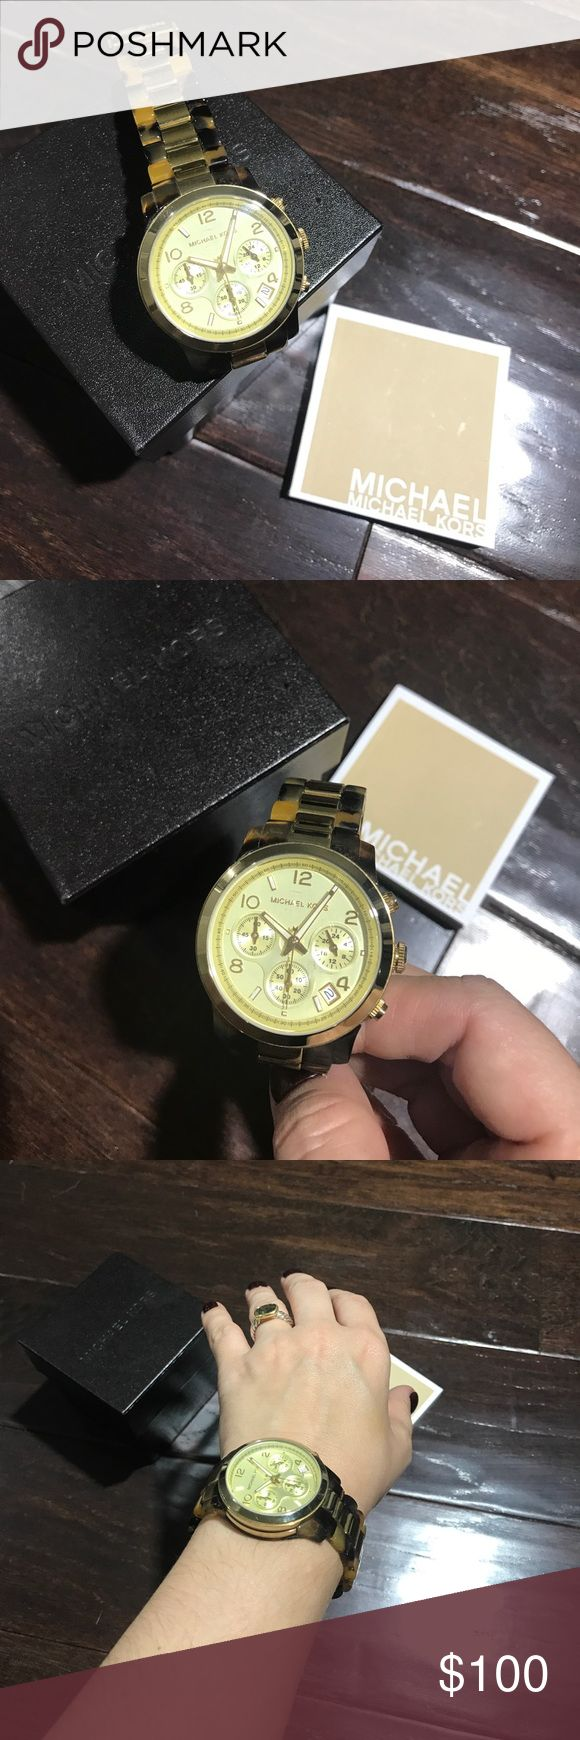 Michael Kors Tortoise Shell Watch Michael Kors tortoise shell and gold watch. Minor scratches and needs battery, both issues reflected in price. Michael Kors Accessories Watches